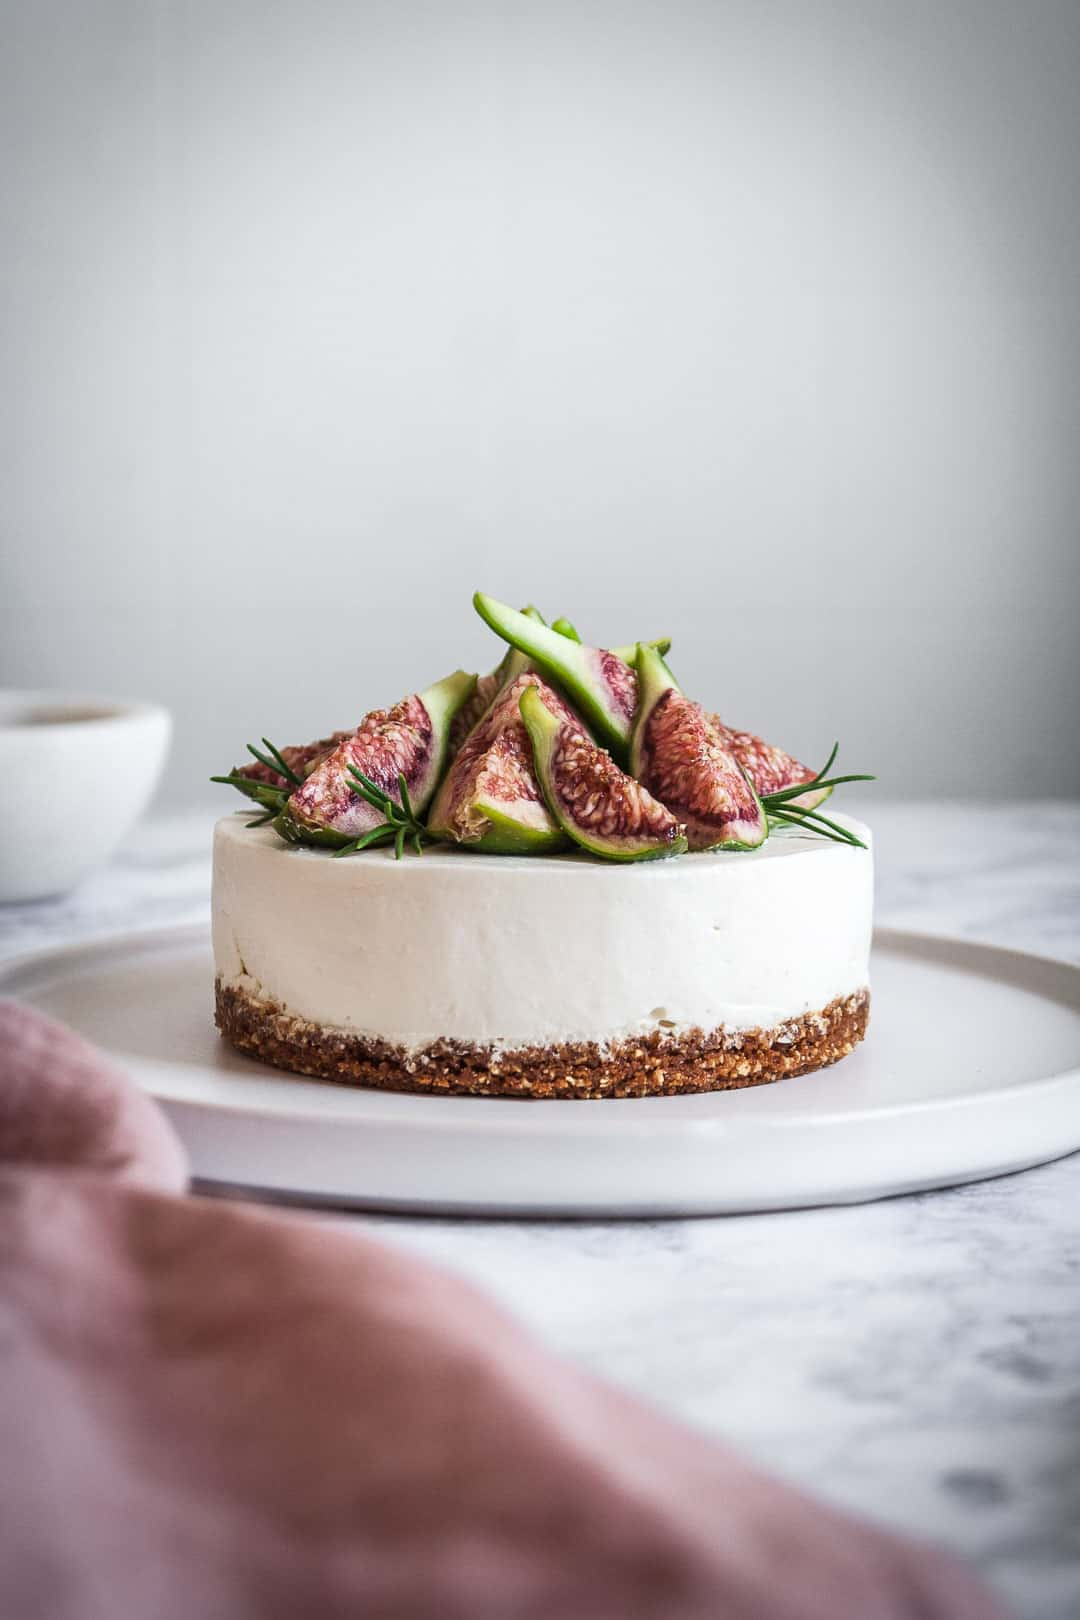 Honey orange cheesecake with figs and rosemary almond crust on a marble backdrop - side view of cheesecake with figs on top